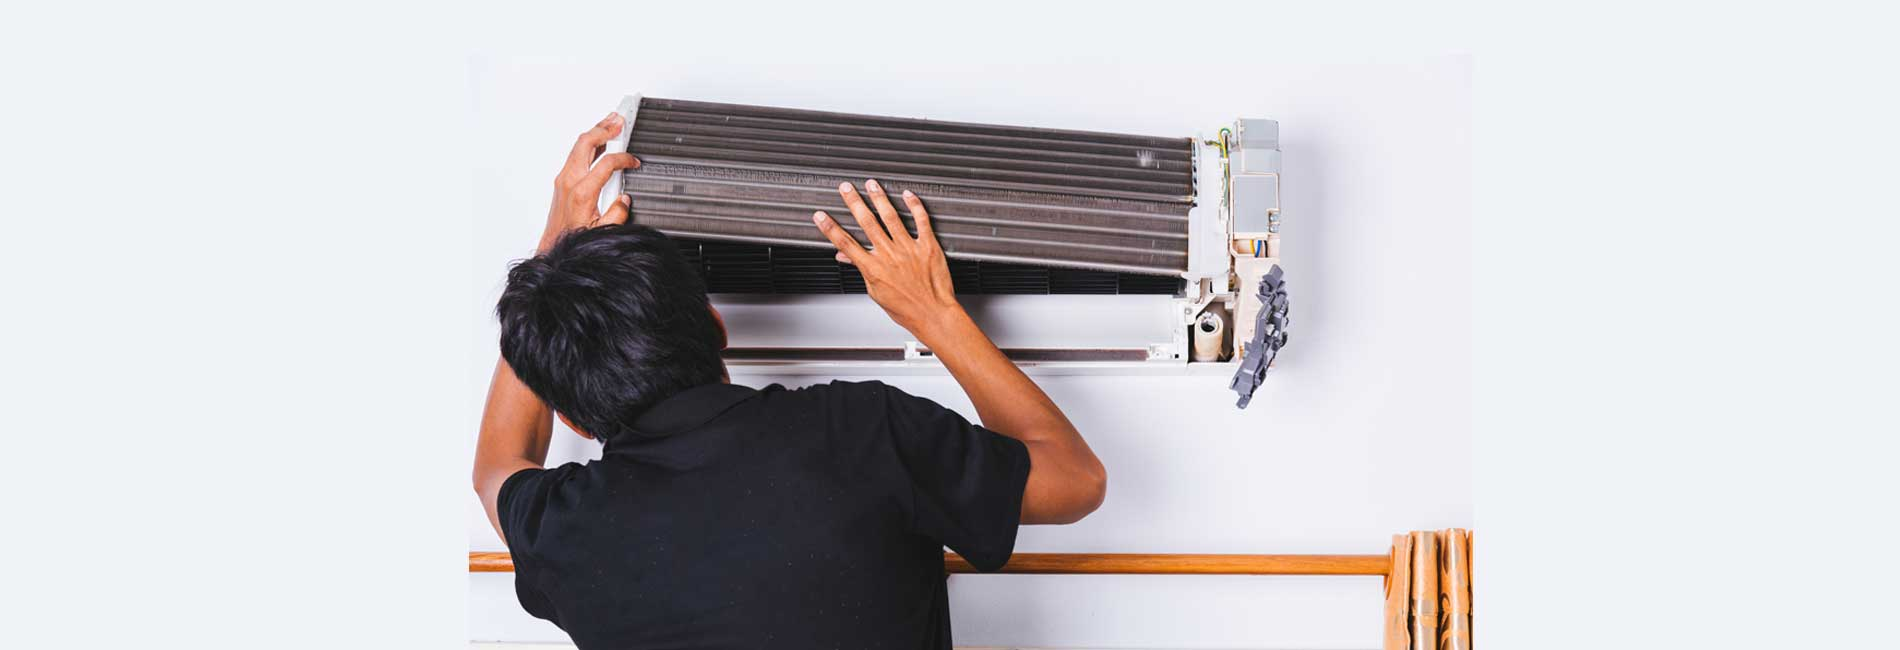 Split AC Uninstallation in Guduvanchery